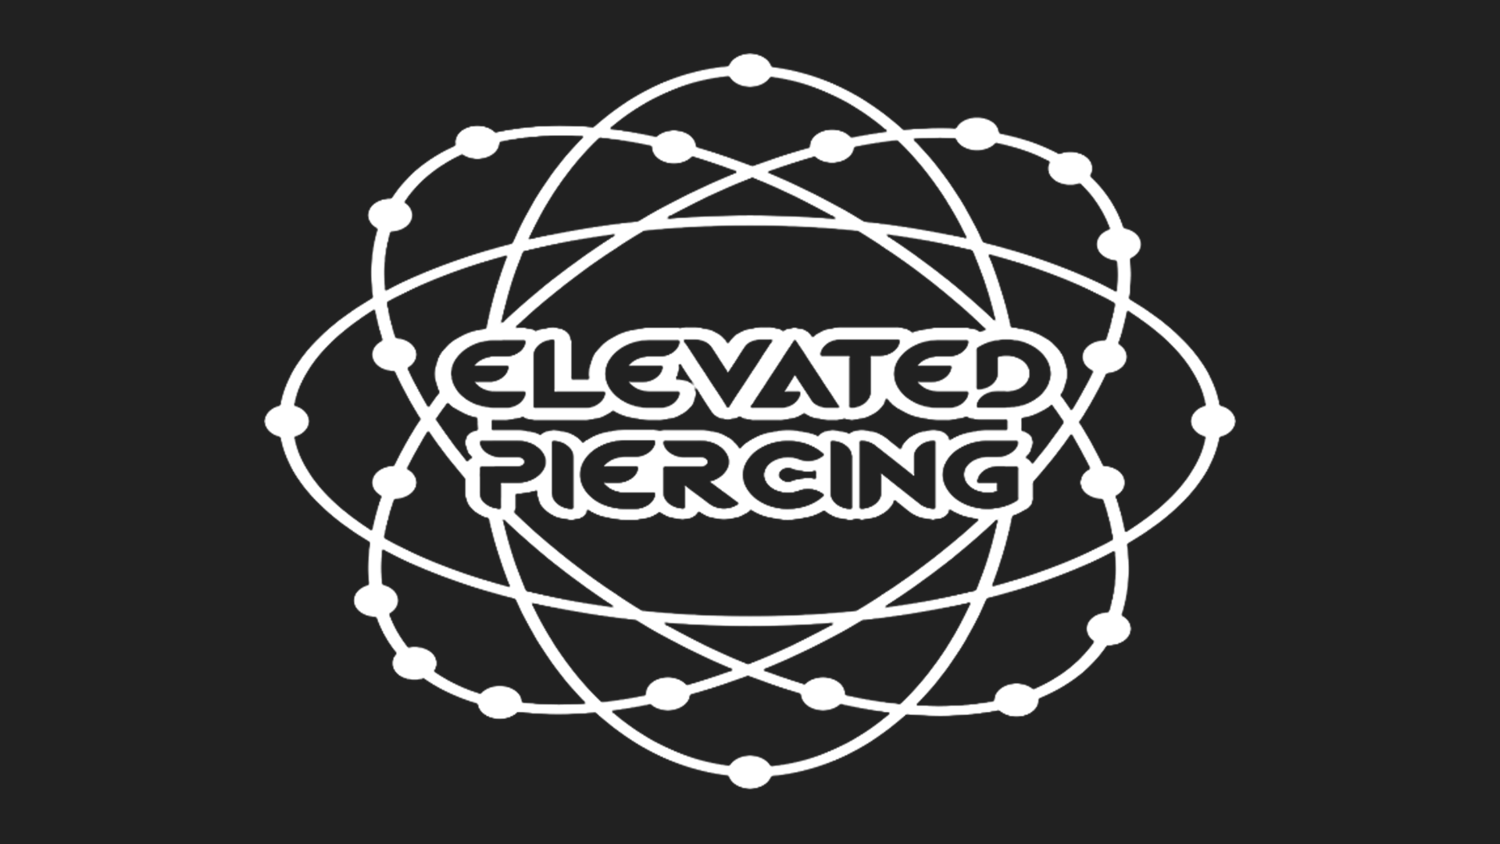 Elevated Piercing